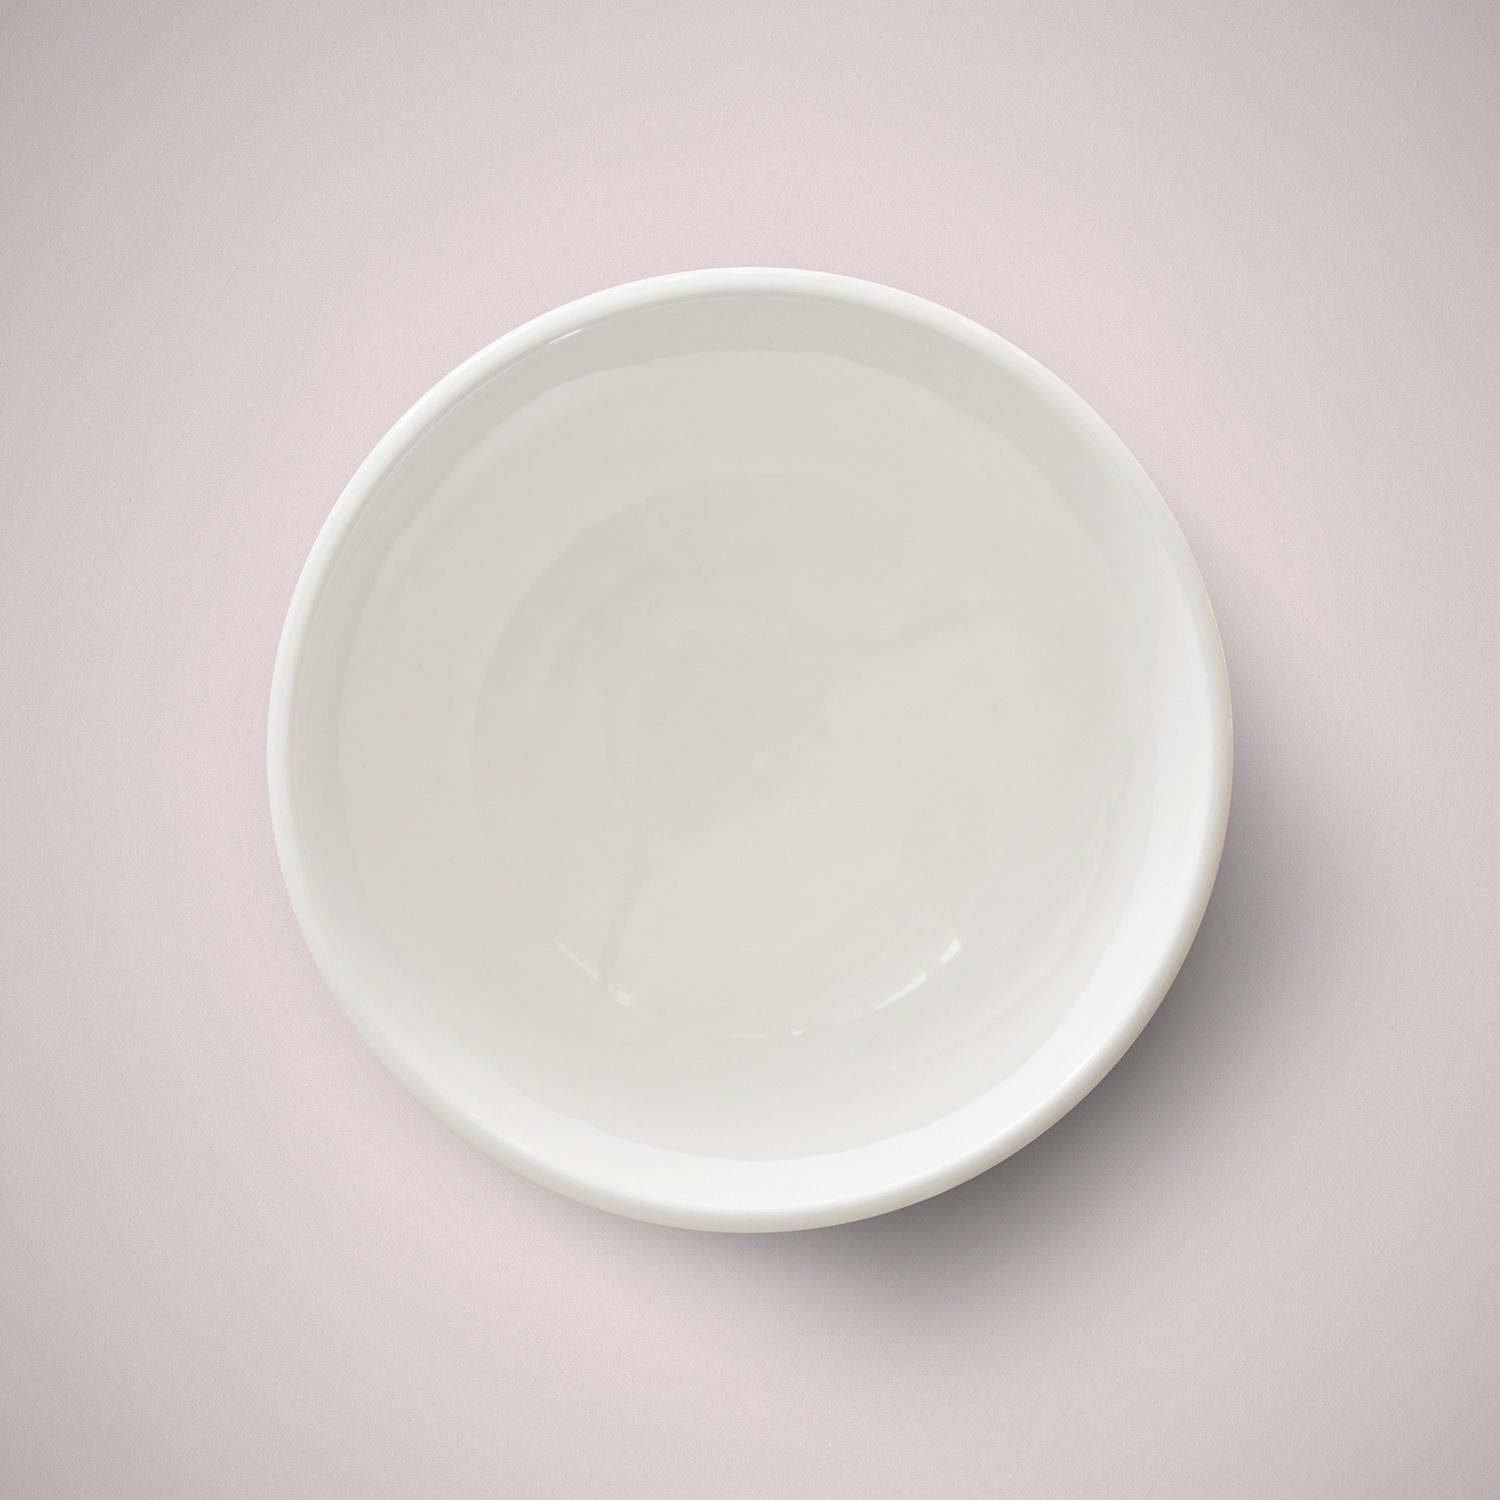 Melt and pour soap in a small bowl on a pale pink surface.